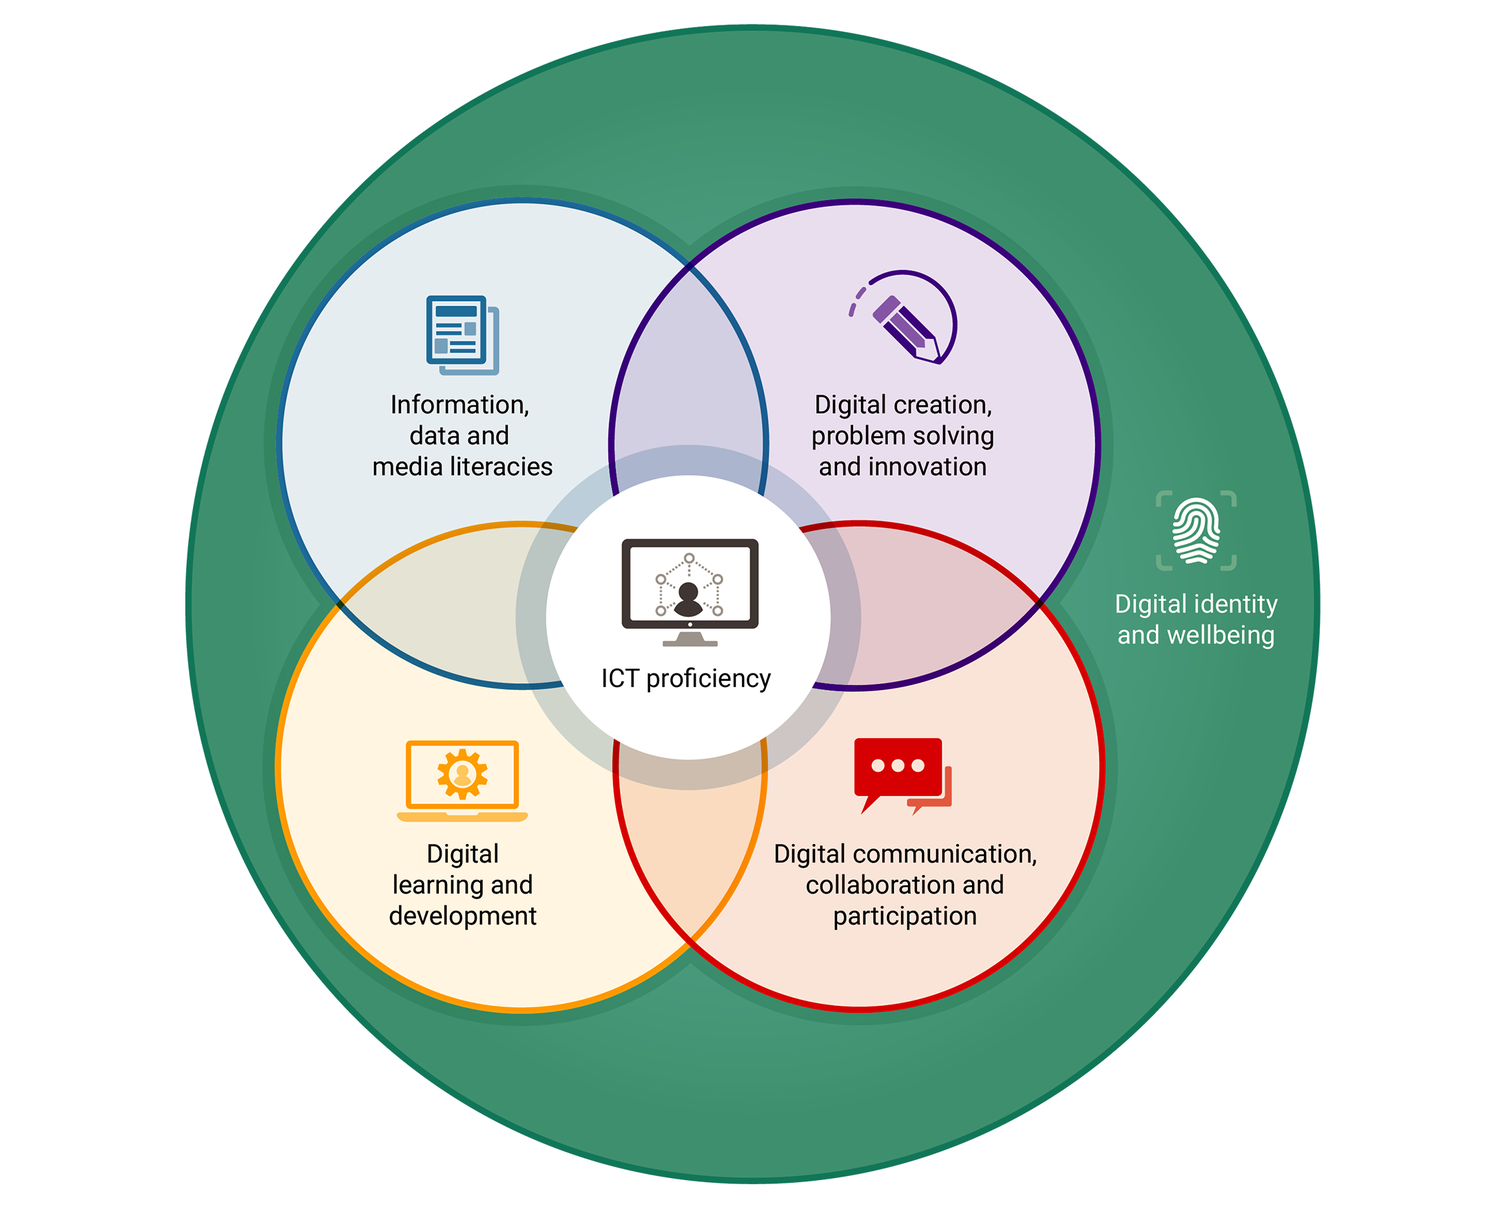 Digital capabilities framework: the six elements defined